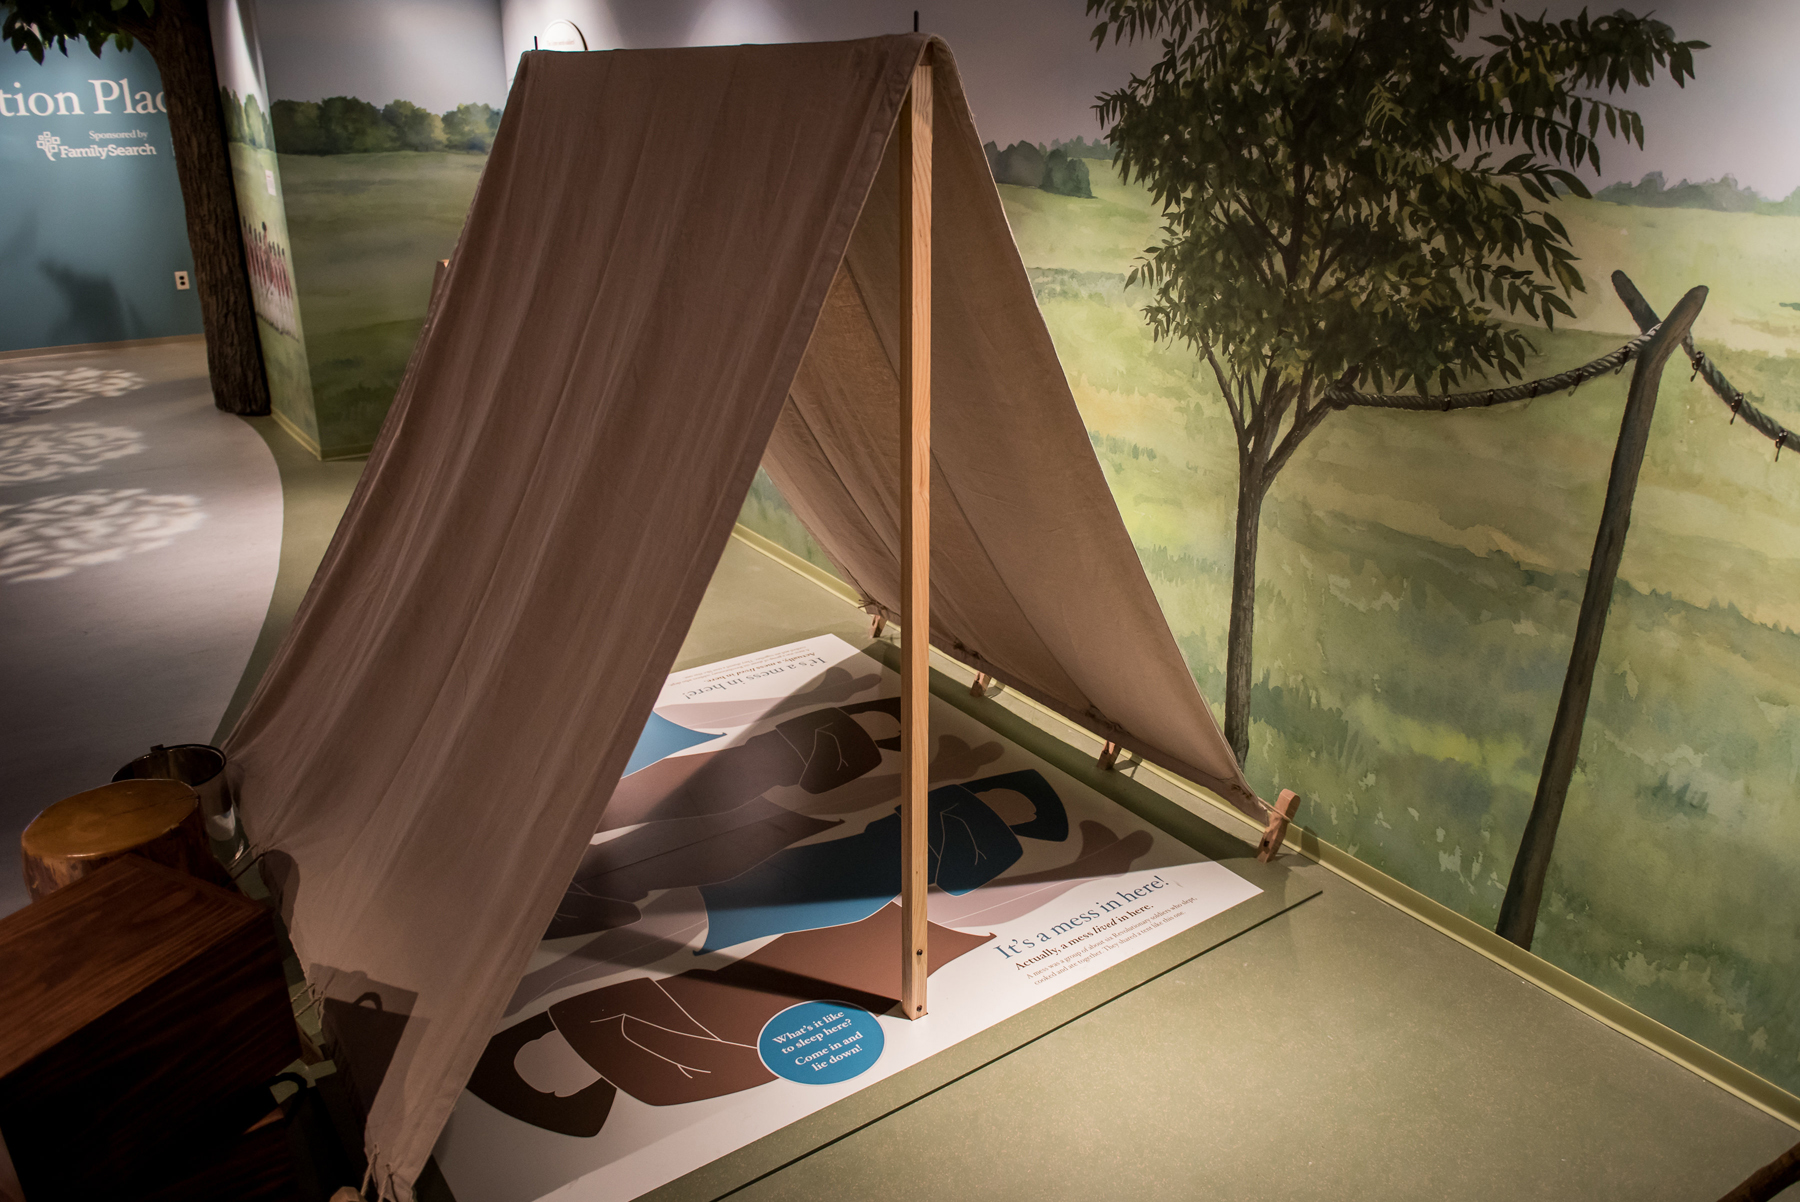 Interactive military encampment at Museum of American Revolution.